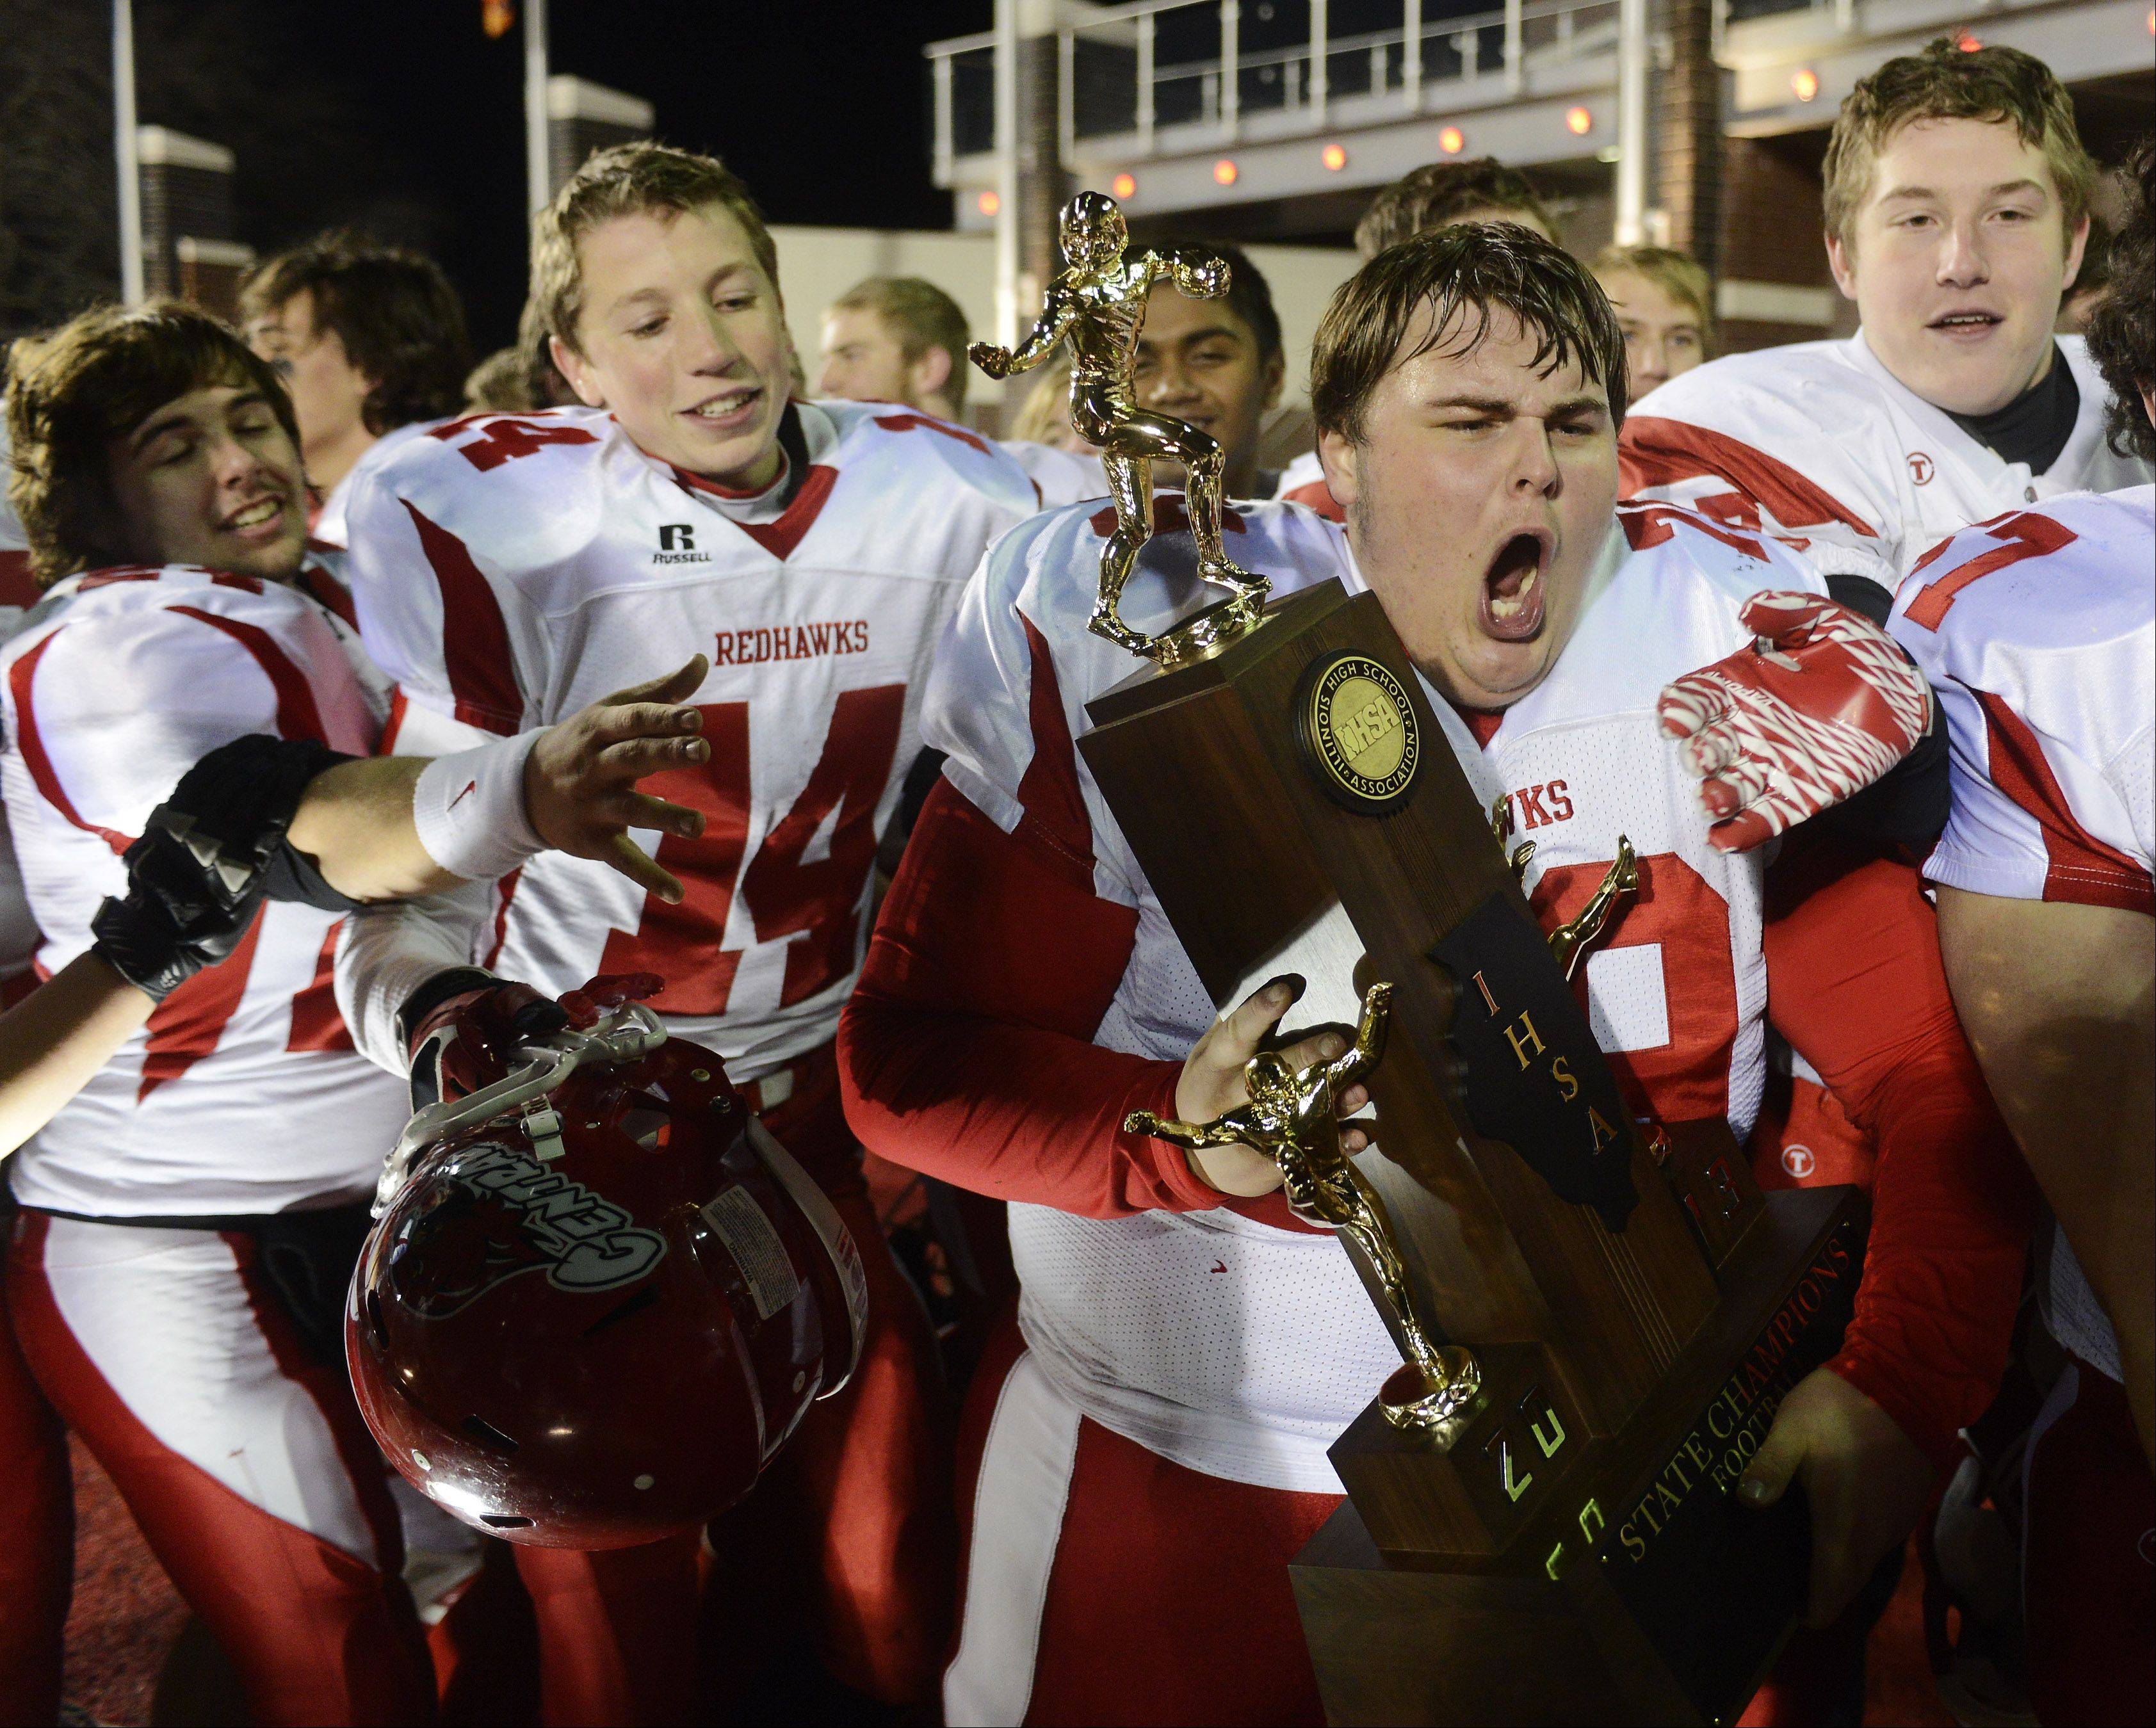 Naperville Central�s Chris Wenkel holds the team�s championship trophy after their victory over Loyola during the class 8A football final in DeKalb Saturday.